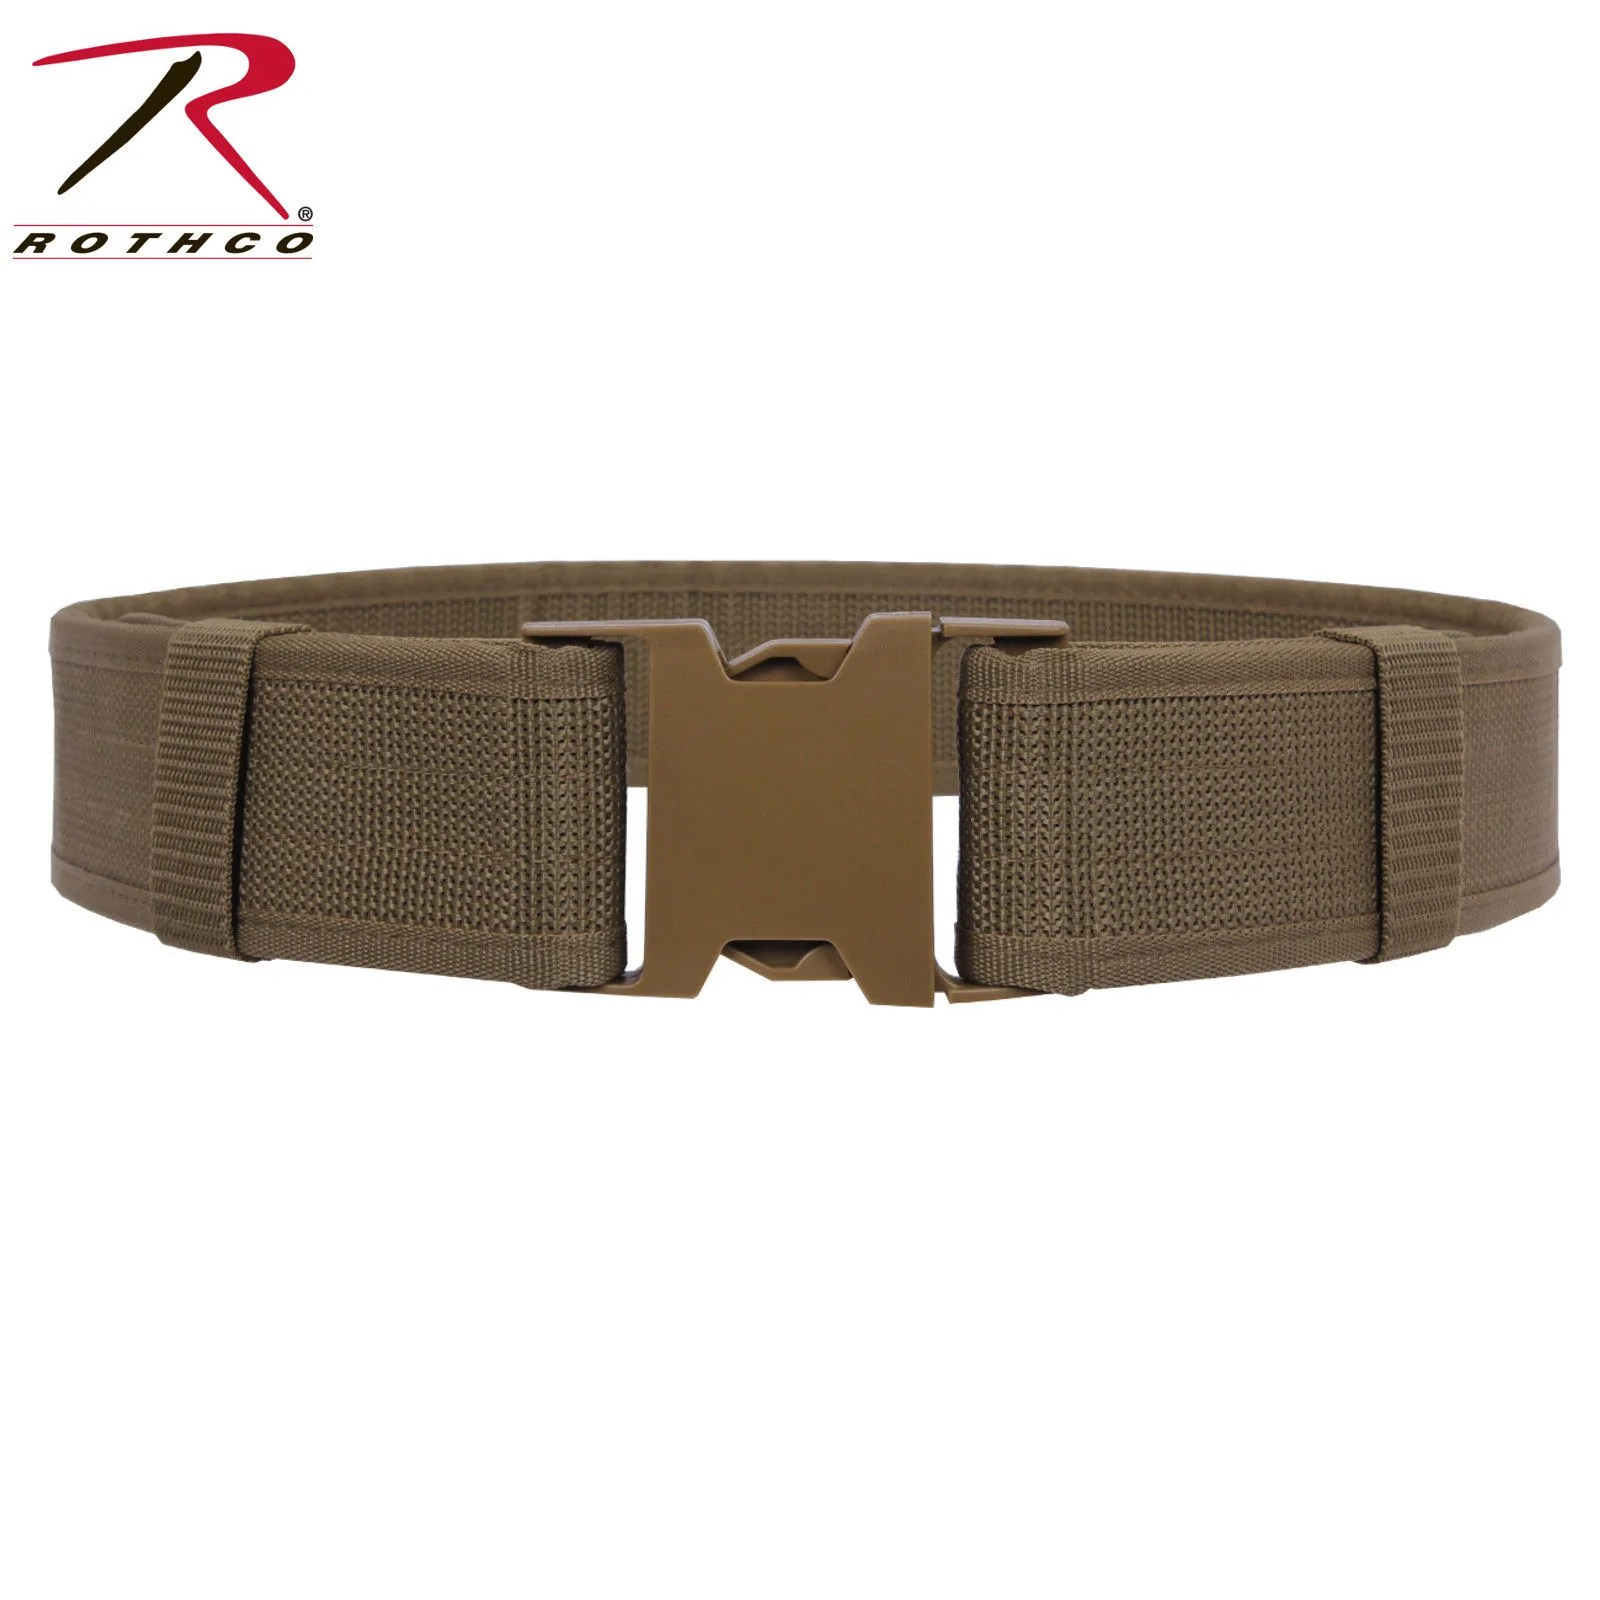 Rothco Coyote Brown Duty Belt - Perfect For Hunting. Military & Law En – Grunt Force